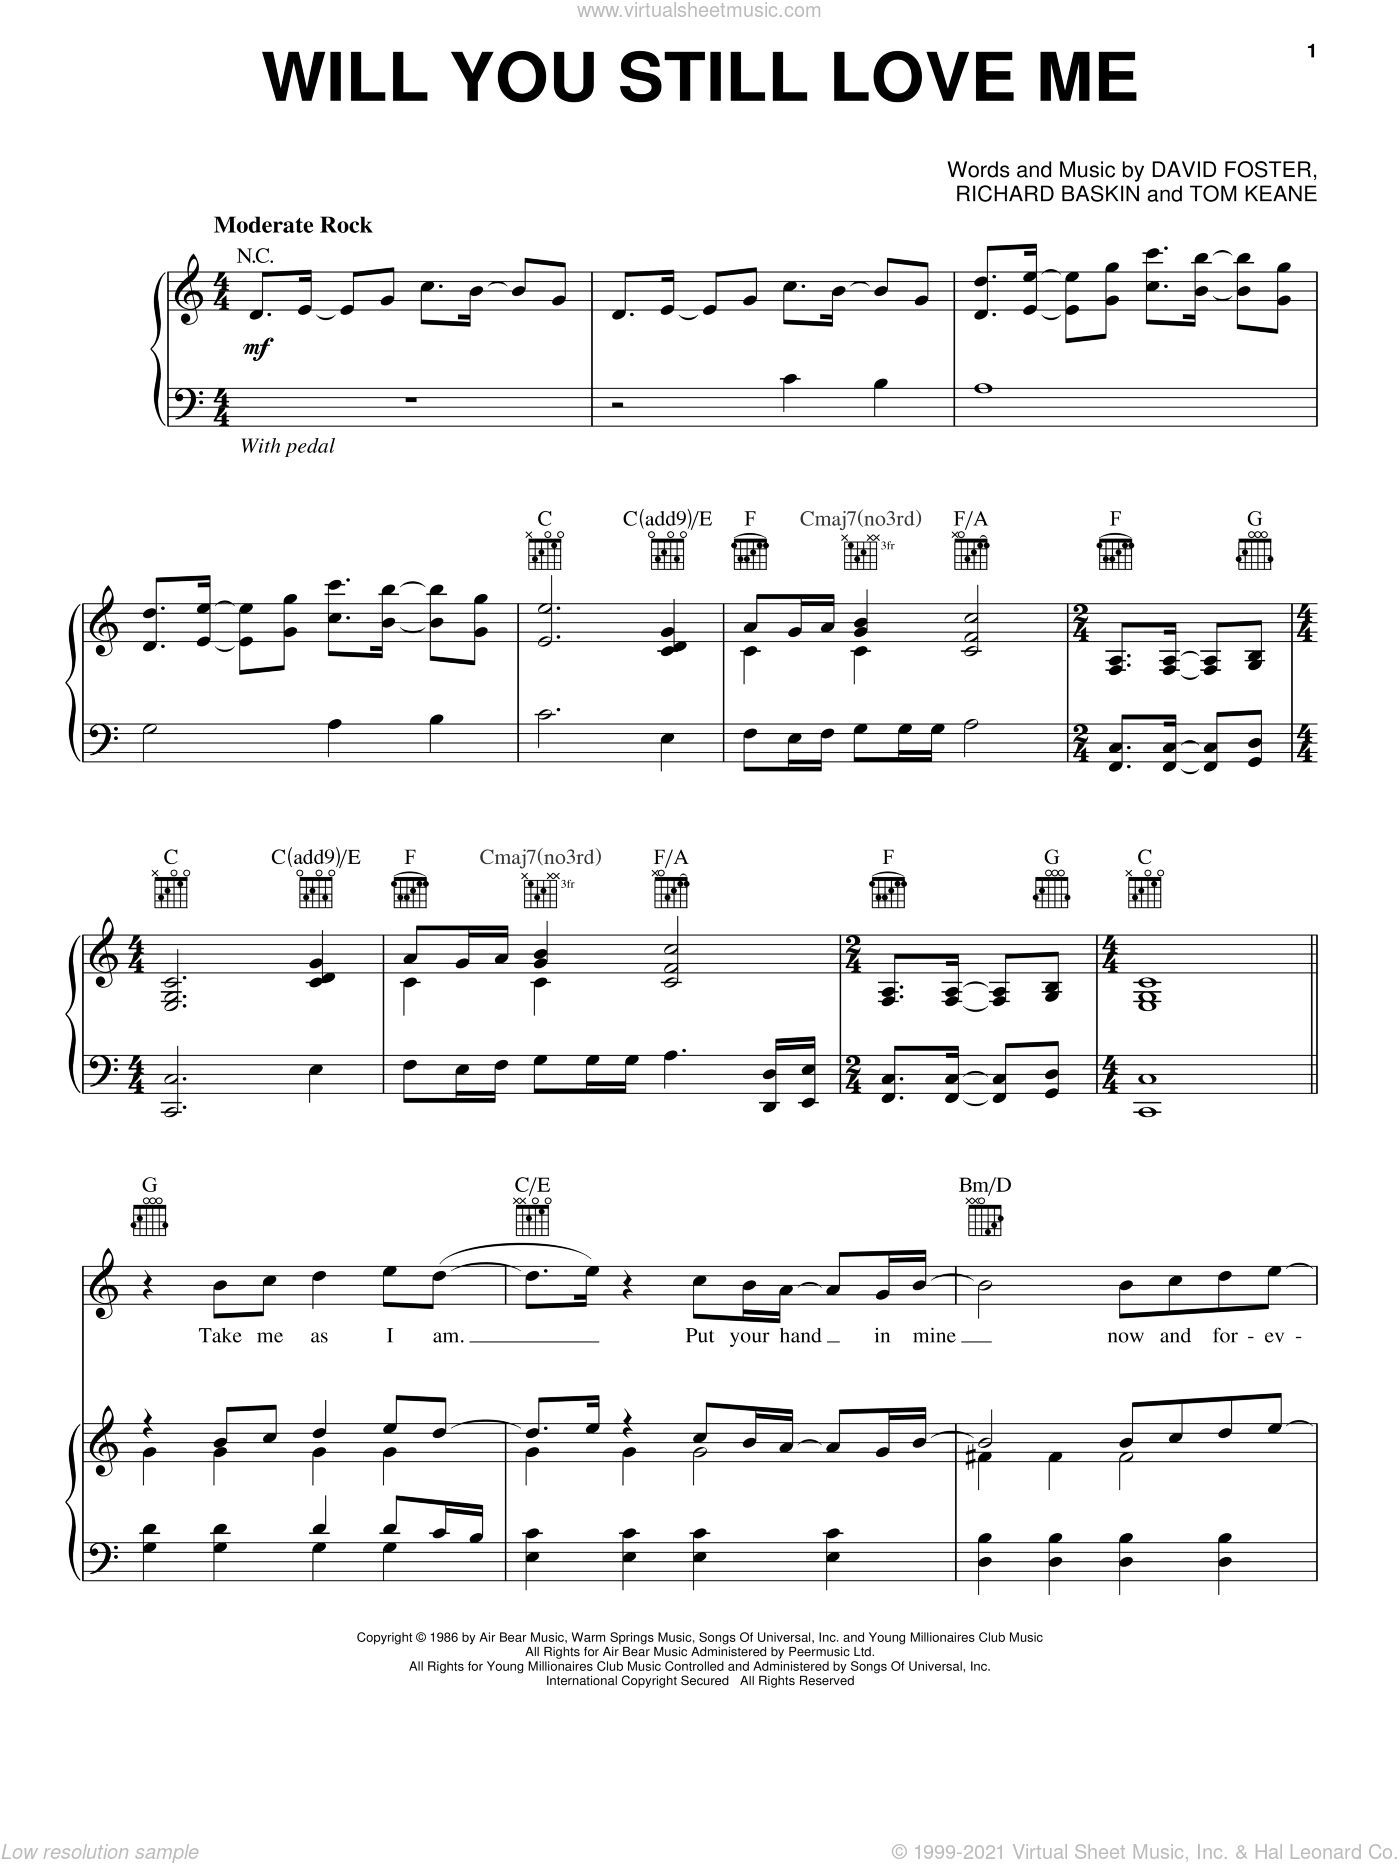 Will You Still Love Me sheet music for voice, piano or guitar by Chicago, David Foster, Richard Baskin and Tom Keane, intermediate skill level